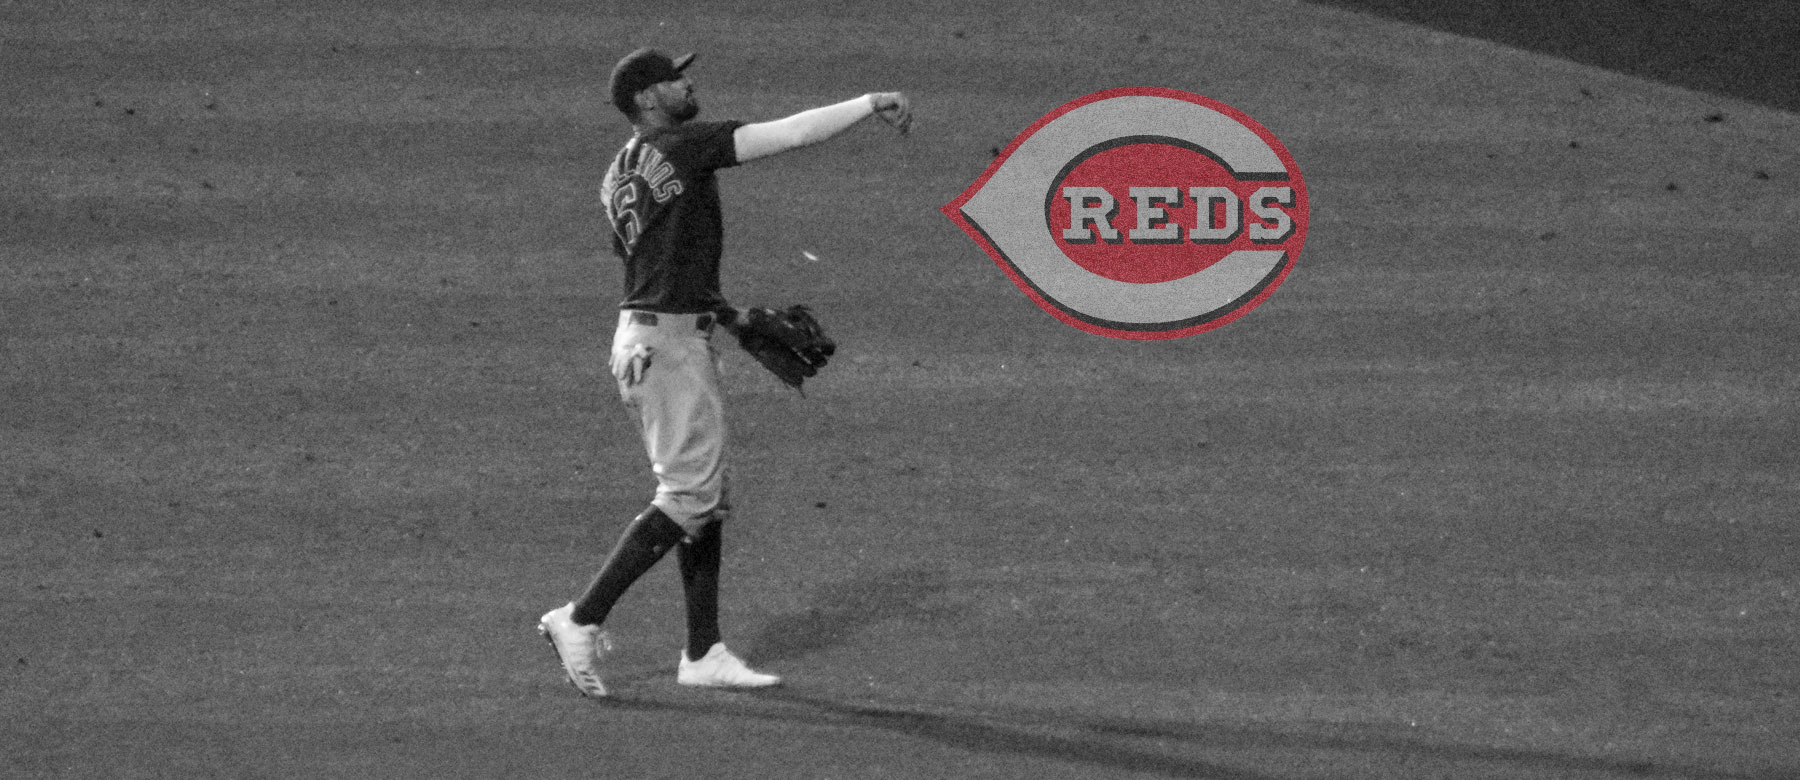 Reds are the front runner for Nicholas Castellanos - Redleg Nation